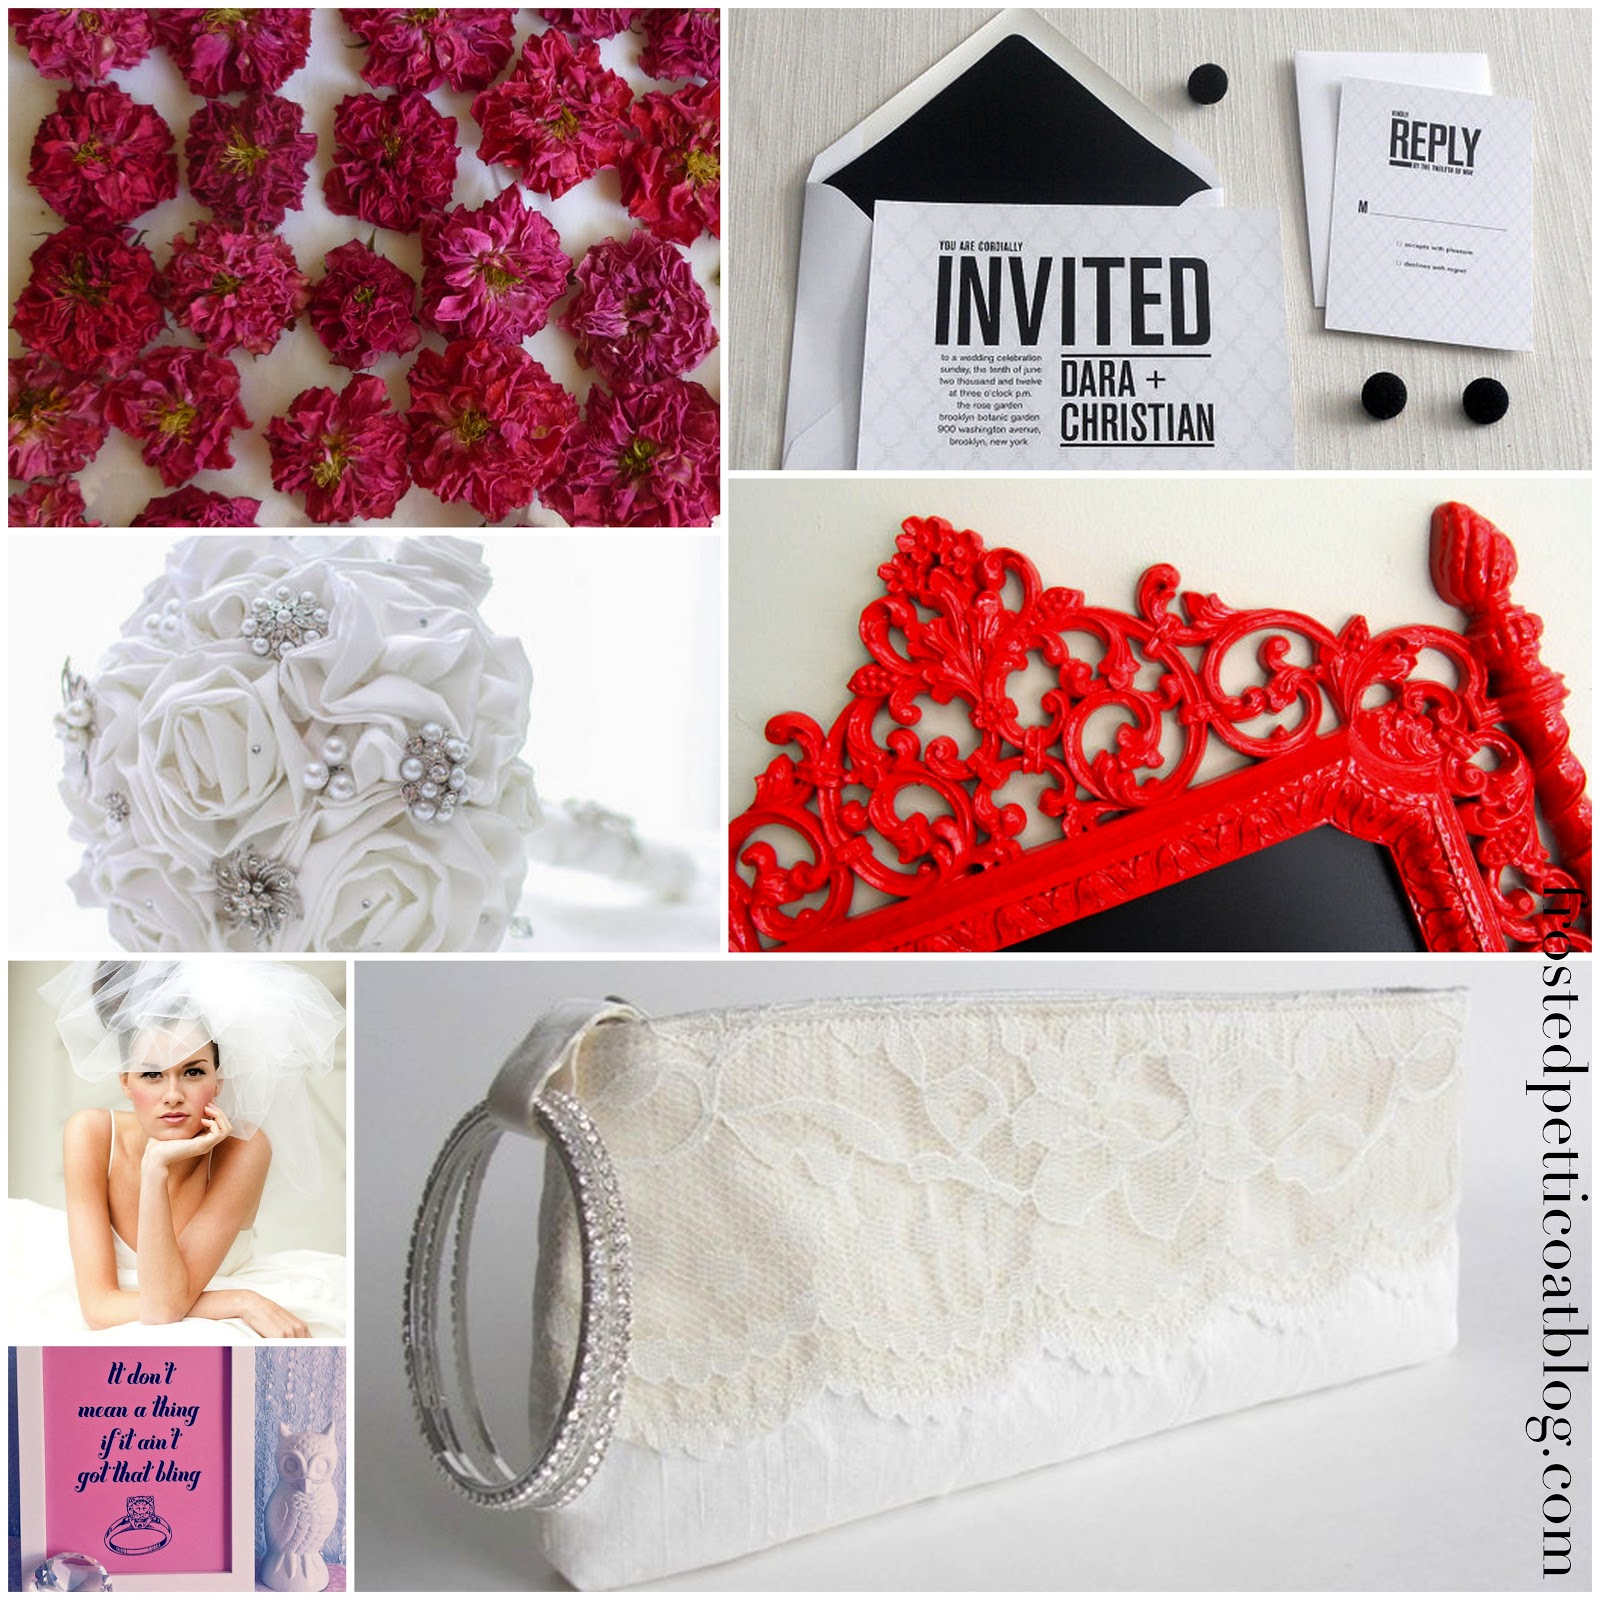 http://3.bp.blogspot.com/-xH8dvKYP__4/UMo5JIoRJlI/AAAAAAAAA4U/4-NiiKUynag/s1600/purse+clutch+bridal+bride+accessories+accessory+bag+giveaway+wedding+pink+red+white+valentines+day+valentine+cupid+winter+spring+dress+bouquet+boutonniere+offbeat+modern+contemporary+20.jpg